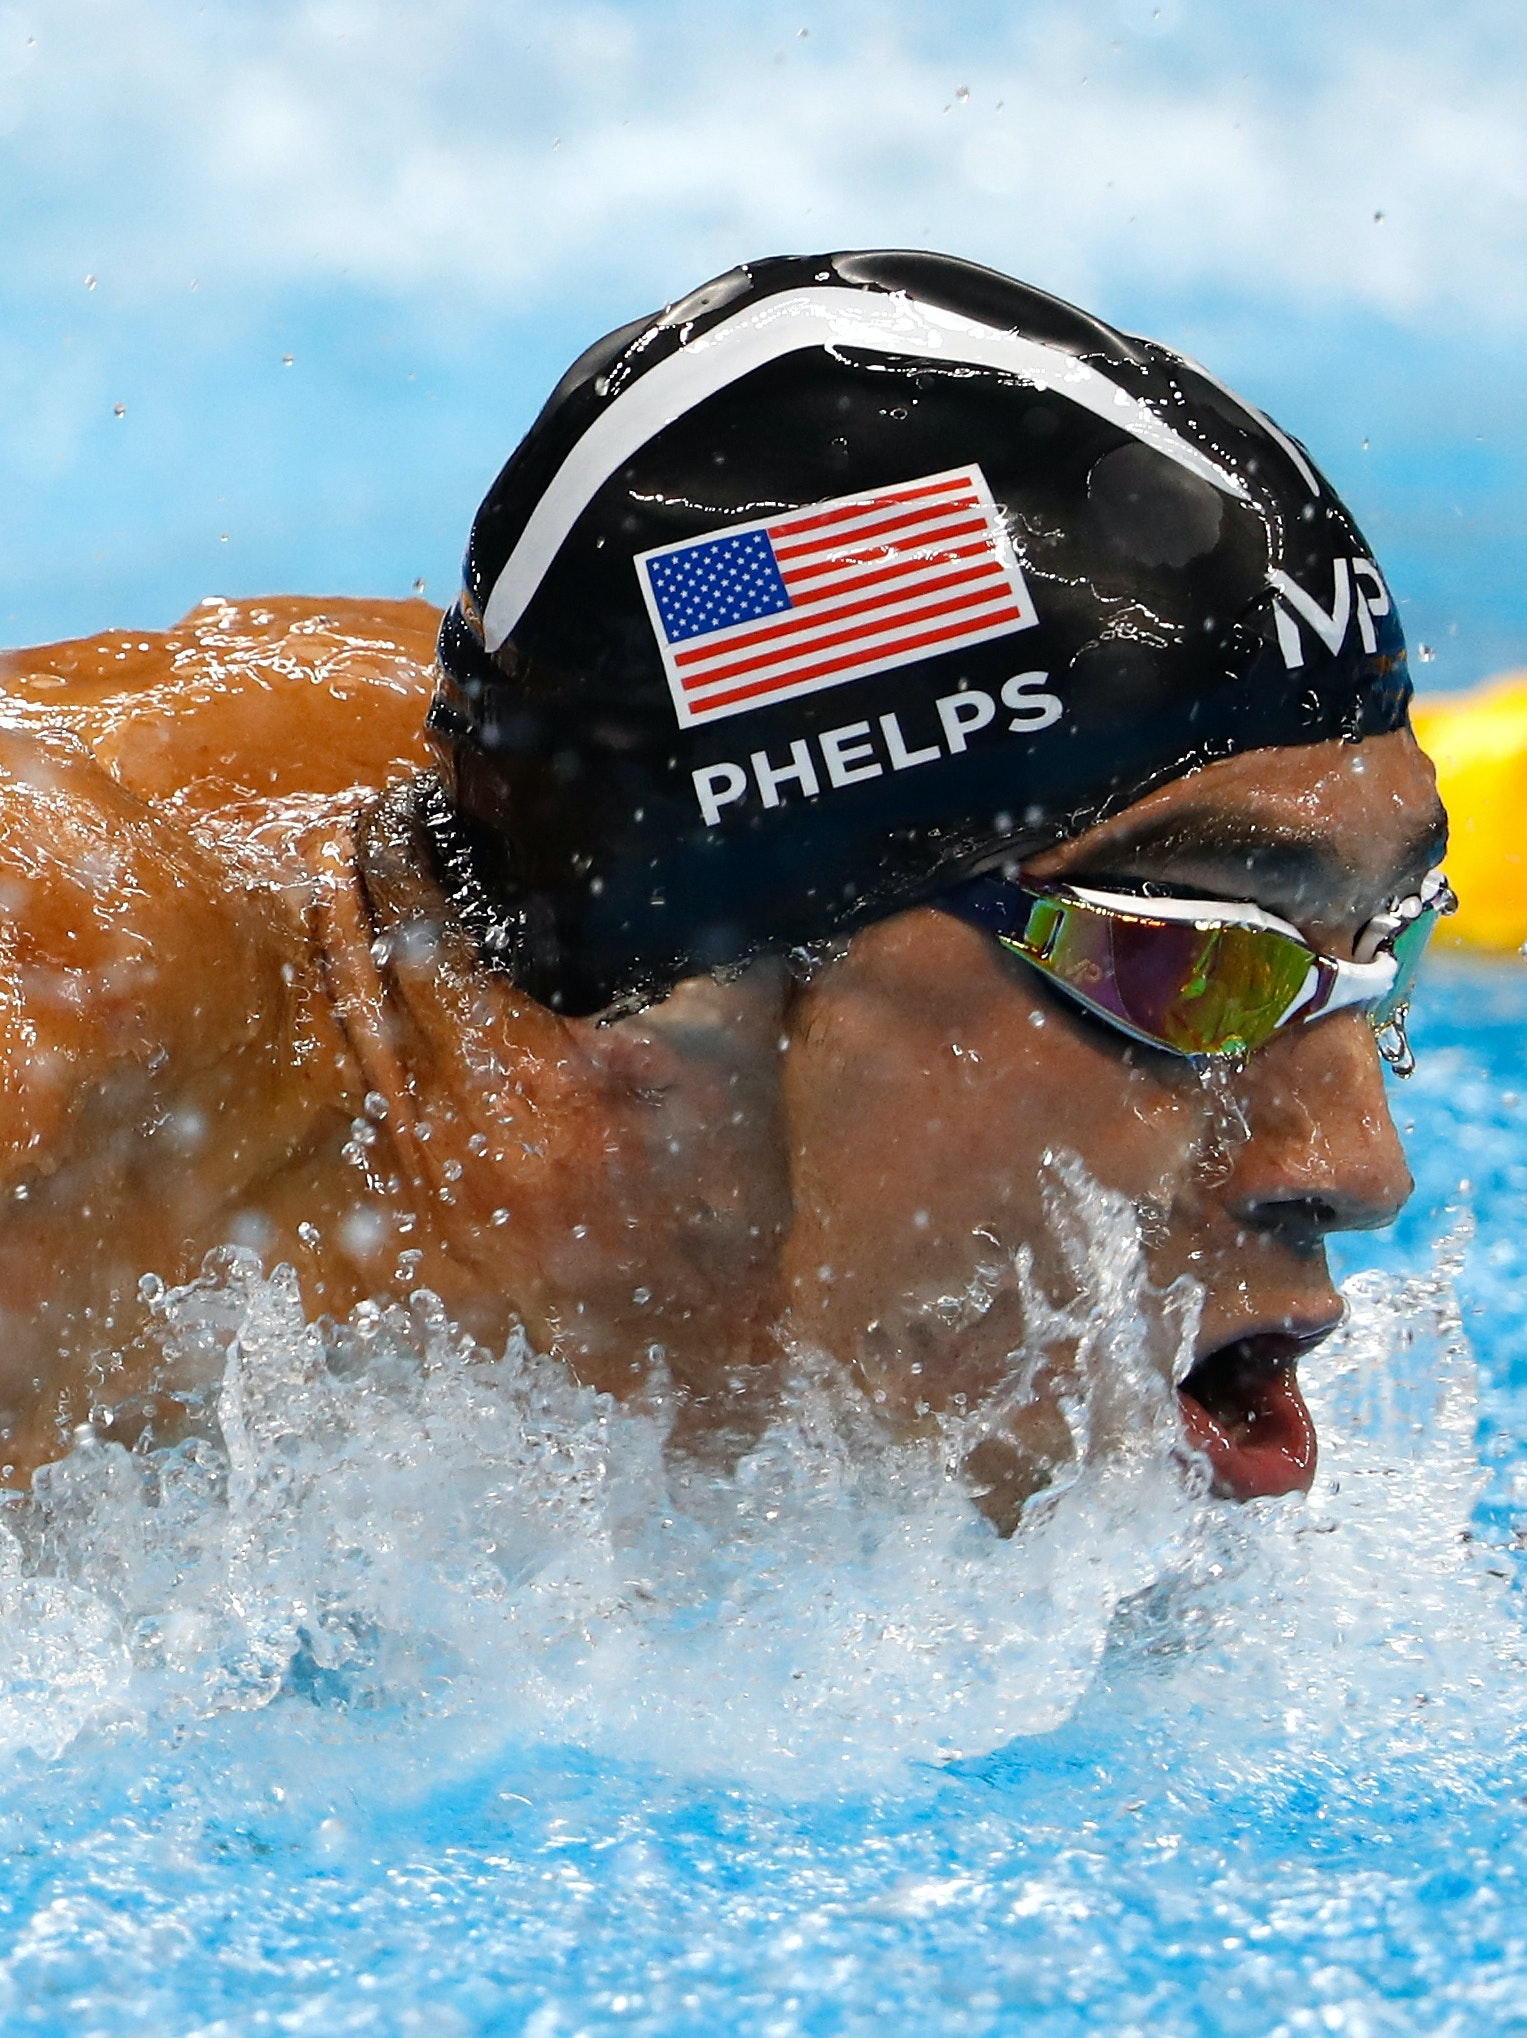 RIO DE JANEIRO, BRAZIL - AUGUST 13:  Michael Phelps of the United States competes in the Men's 4 x 100m Medley Relay Final on Day 8 of the Rio 2016 Olympic Games at the Olympic Aquatics Stadium on August 13, 2016 in Rio de Janeiro, Brazil.  (Photo by Clive Rose/Getty Images)